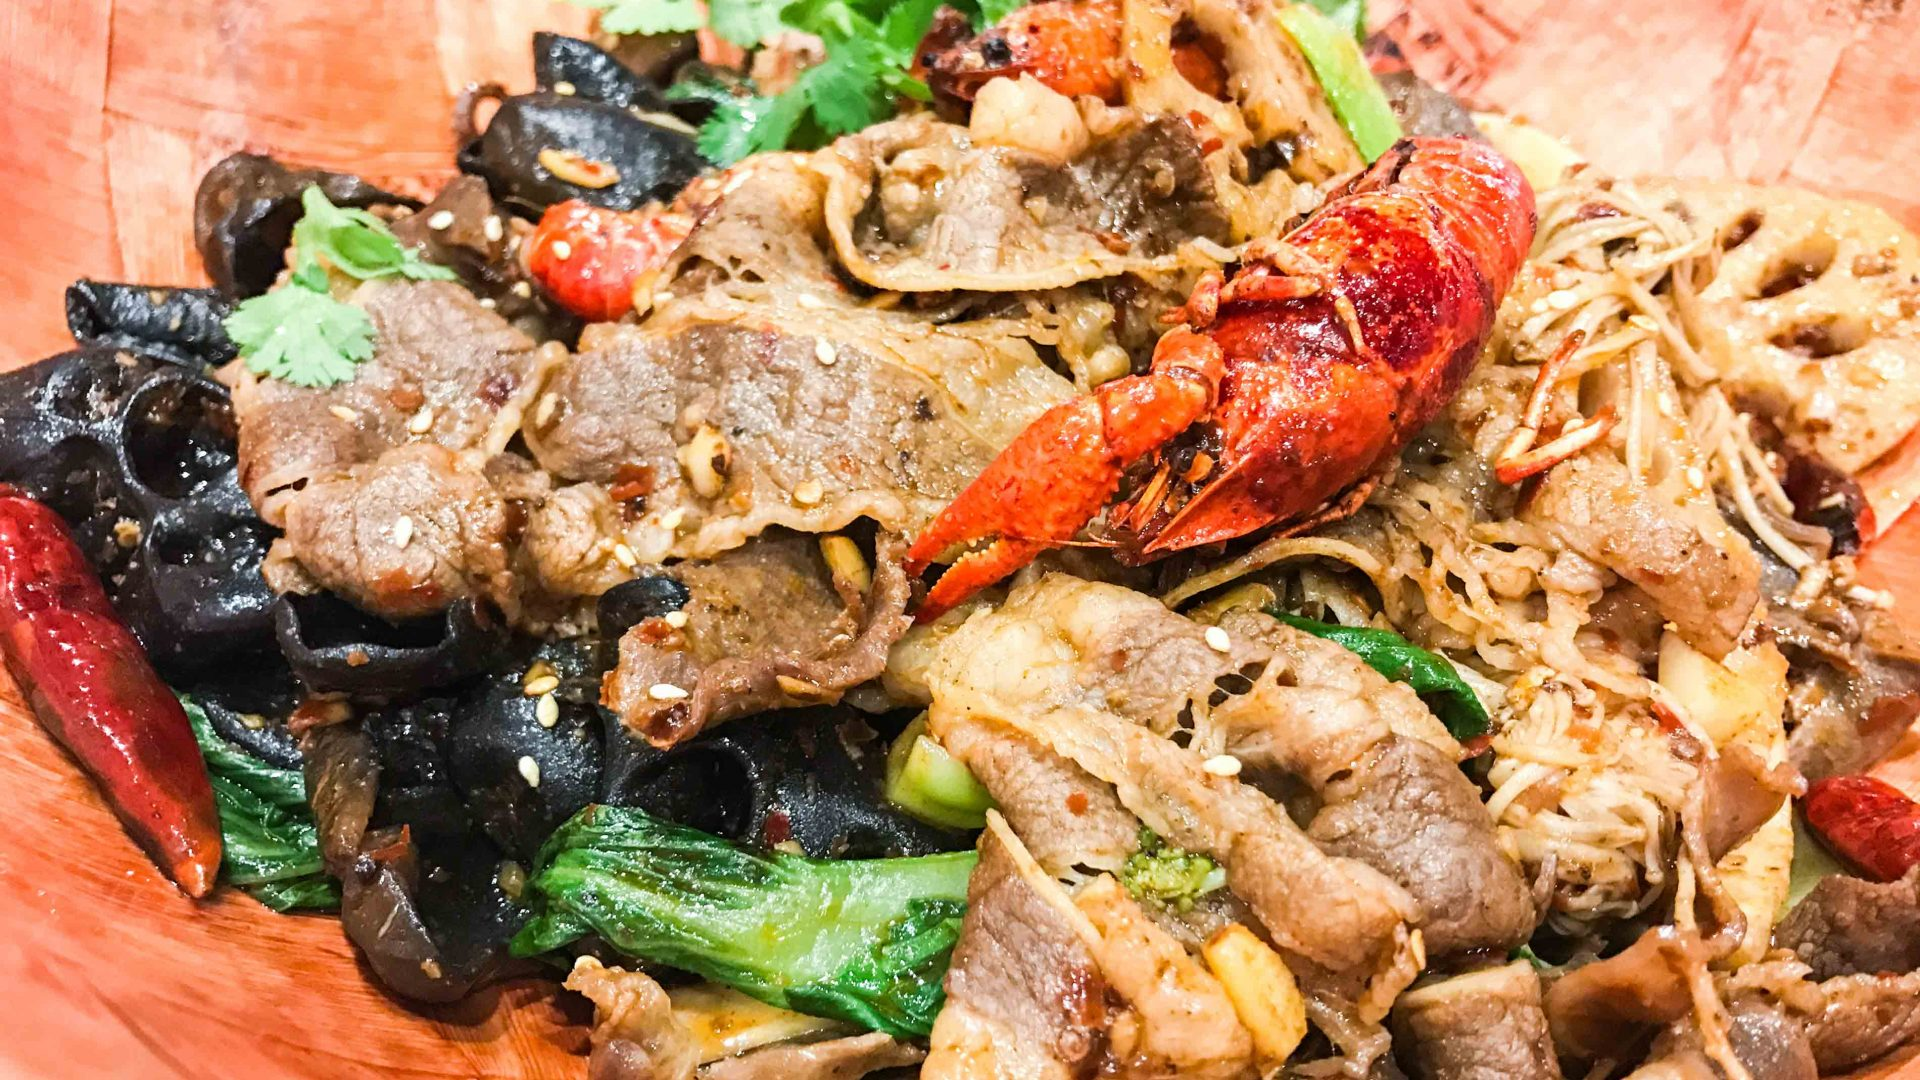 Sichuan matalang with beef and crawfish is served up at an eatery in Flushing, Queens.